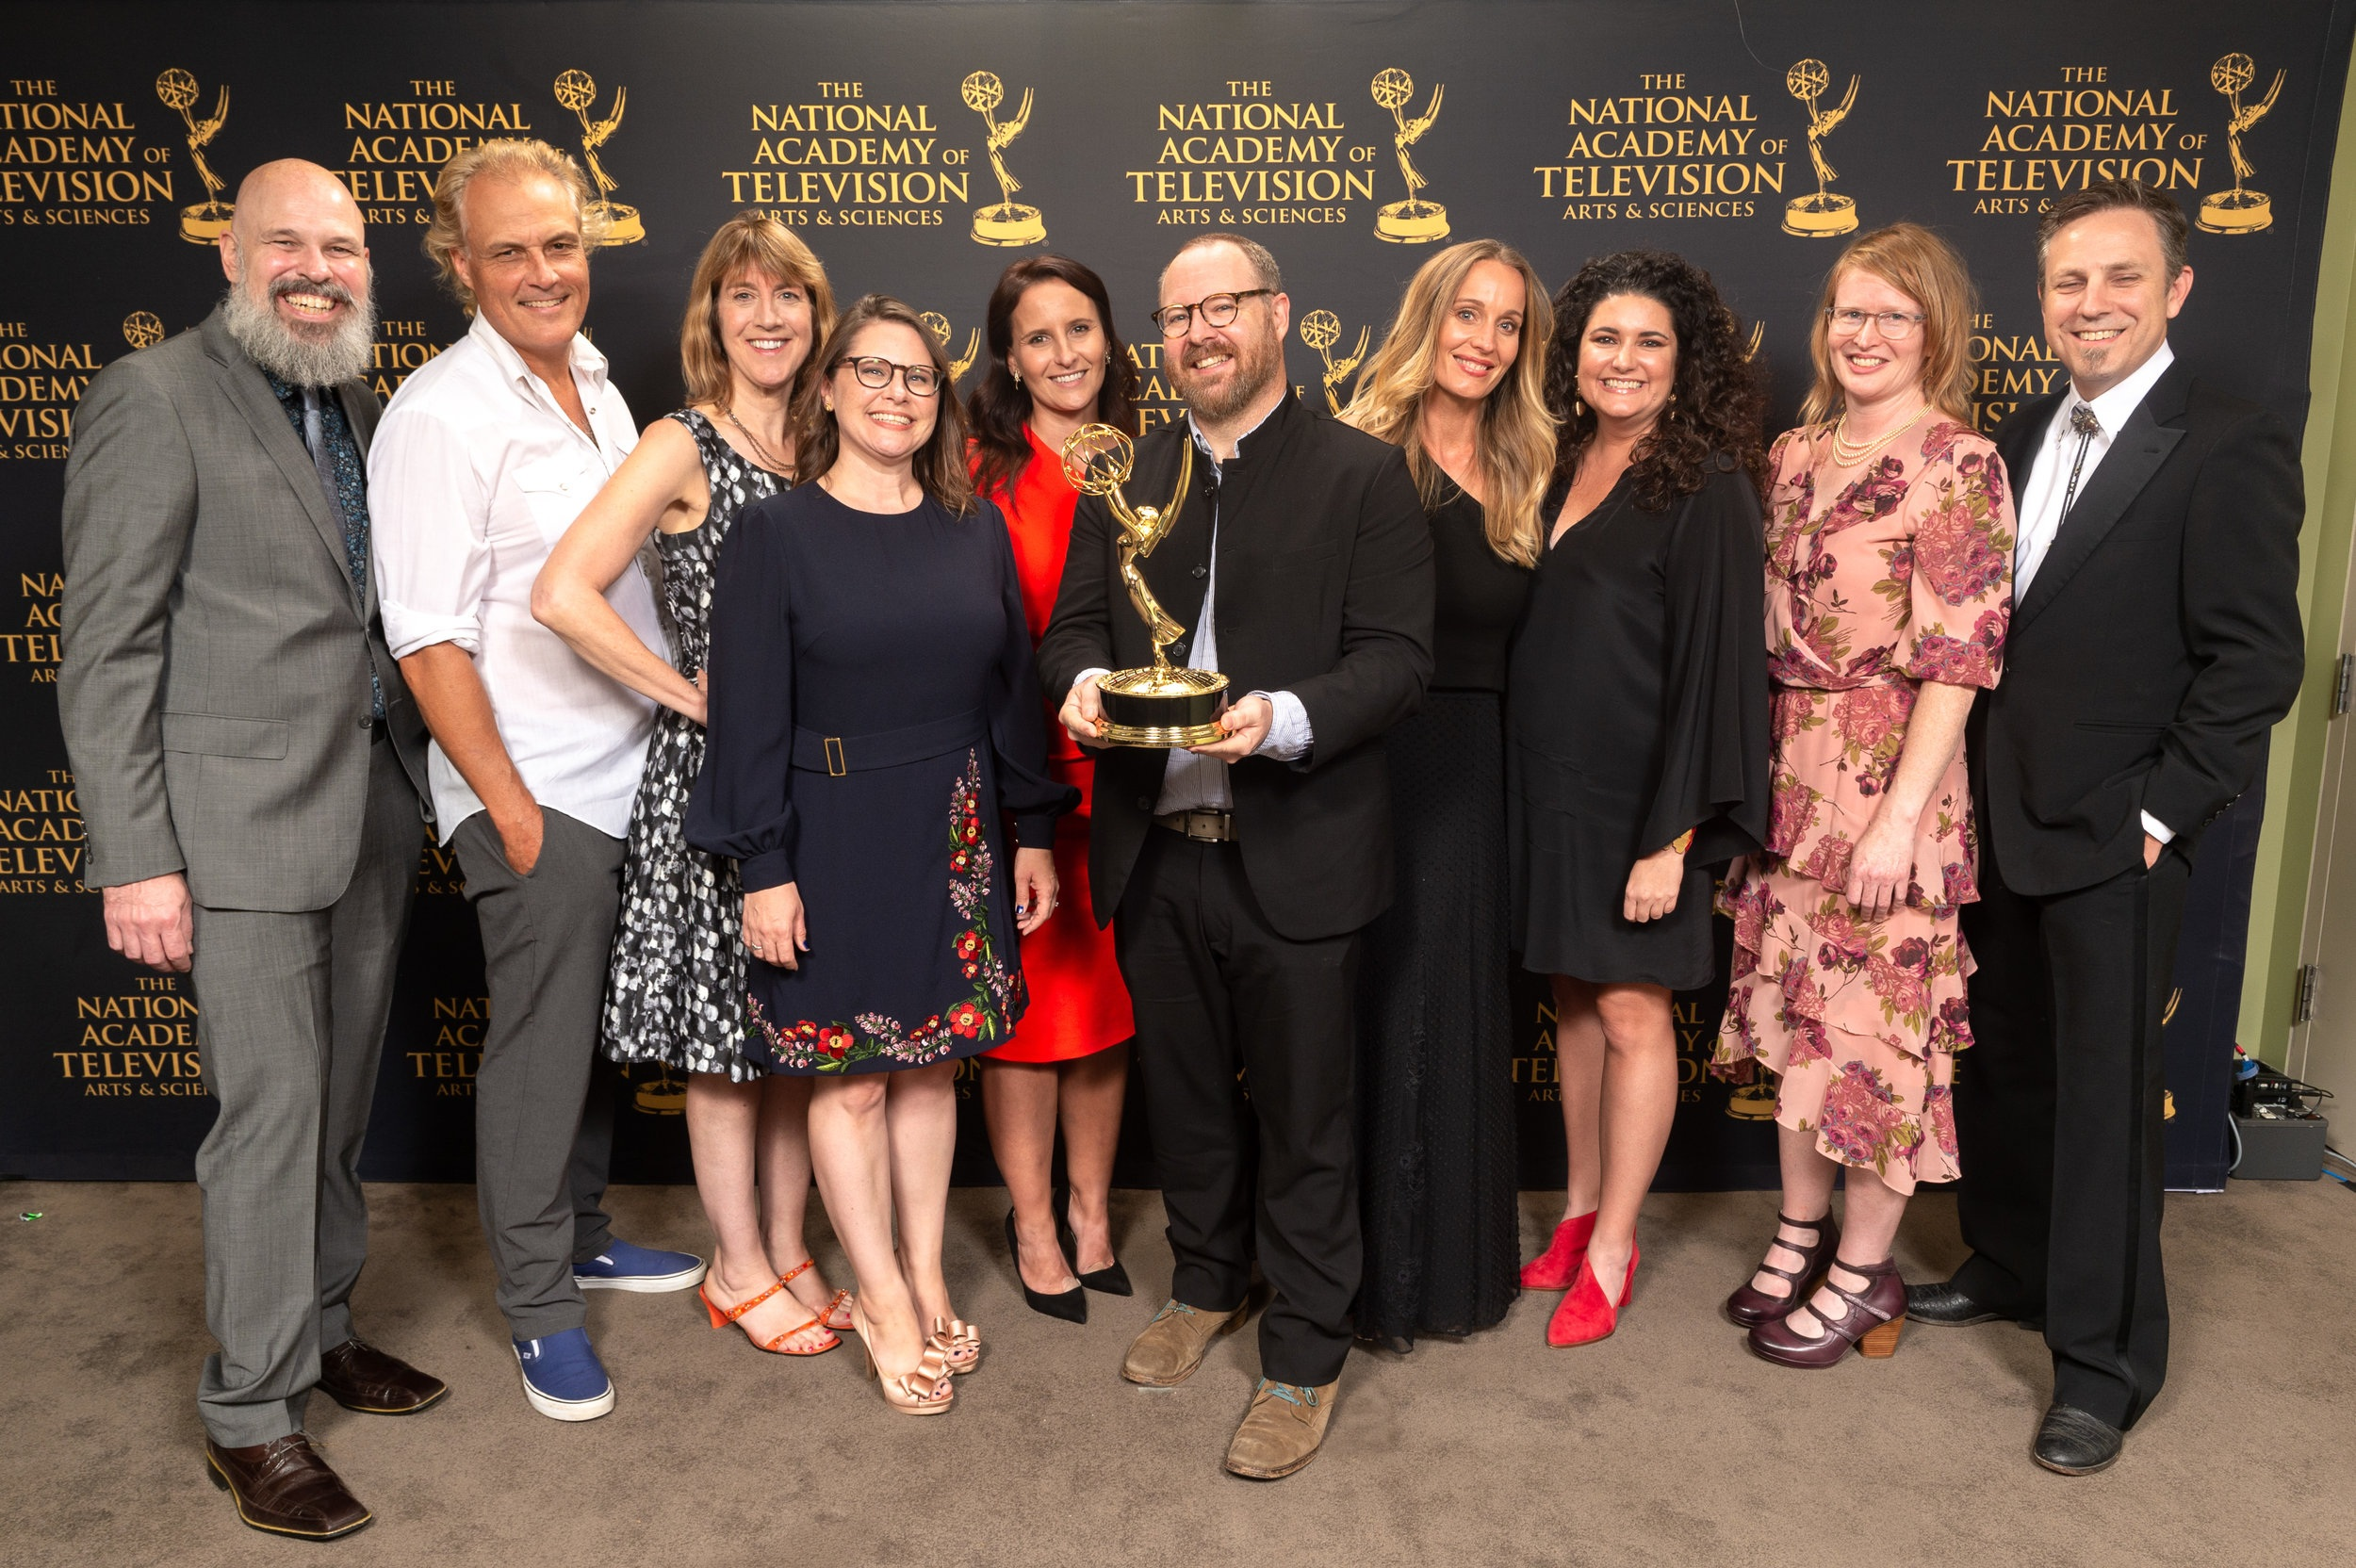 Whole+Team+Emmys+Pic+HiRes+TOWER.jpg